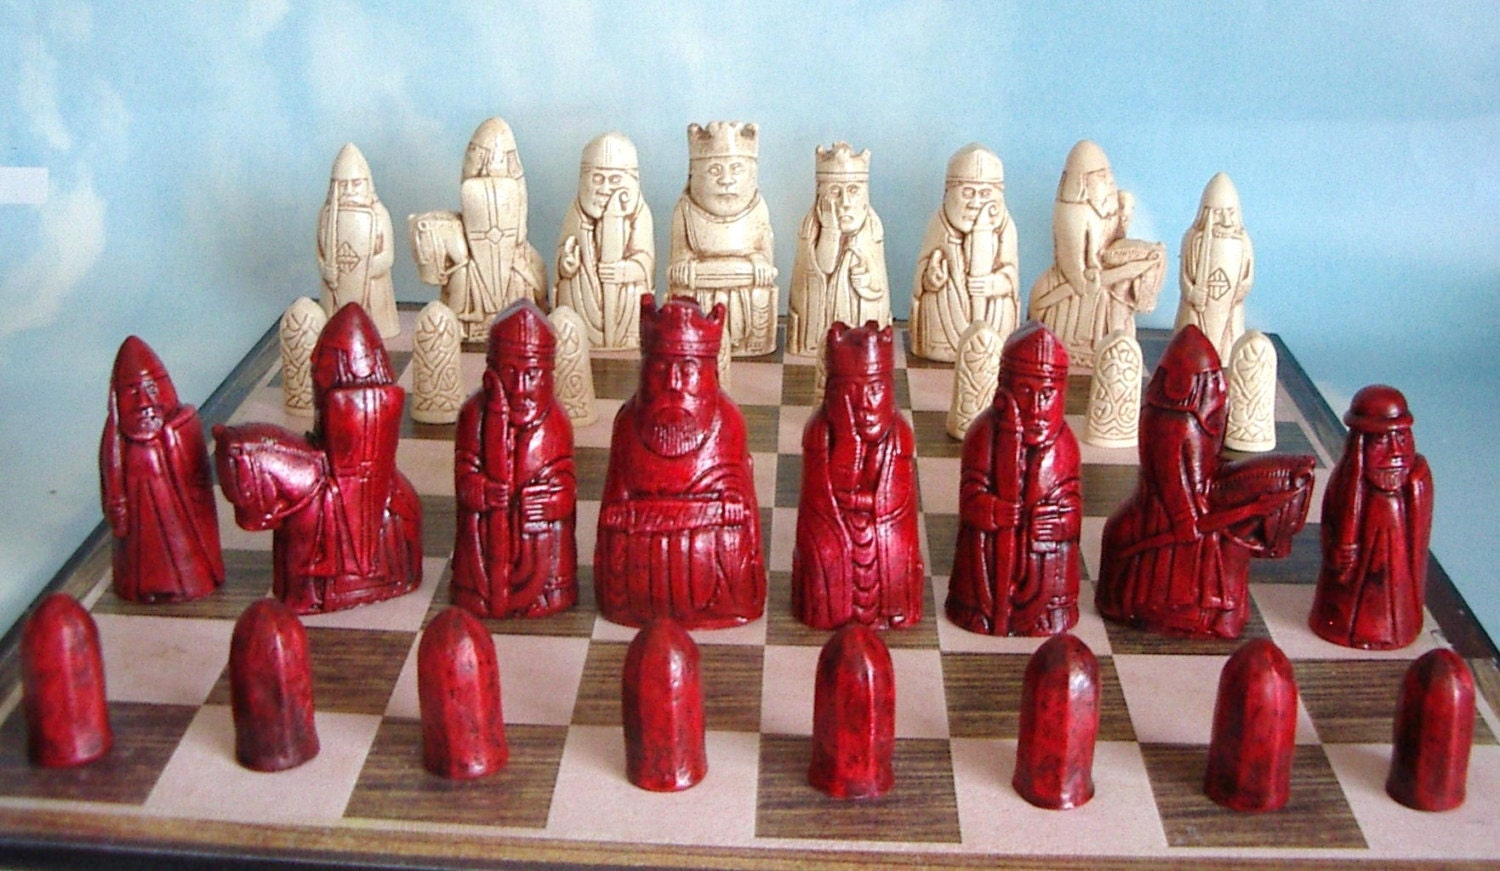 Isle of lewis chess set moldsset 39 a 39 10 latex molds by chessets - Lewis chessmen set ...